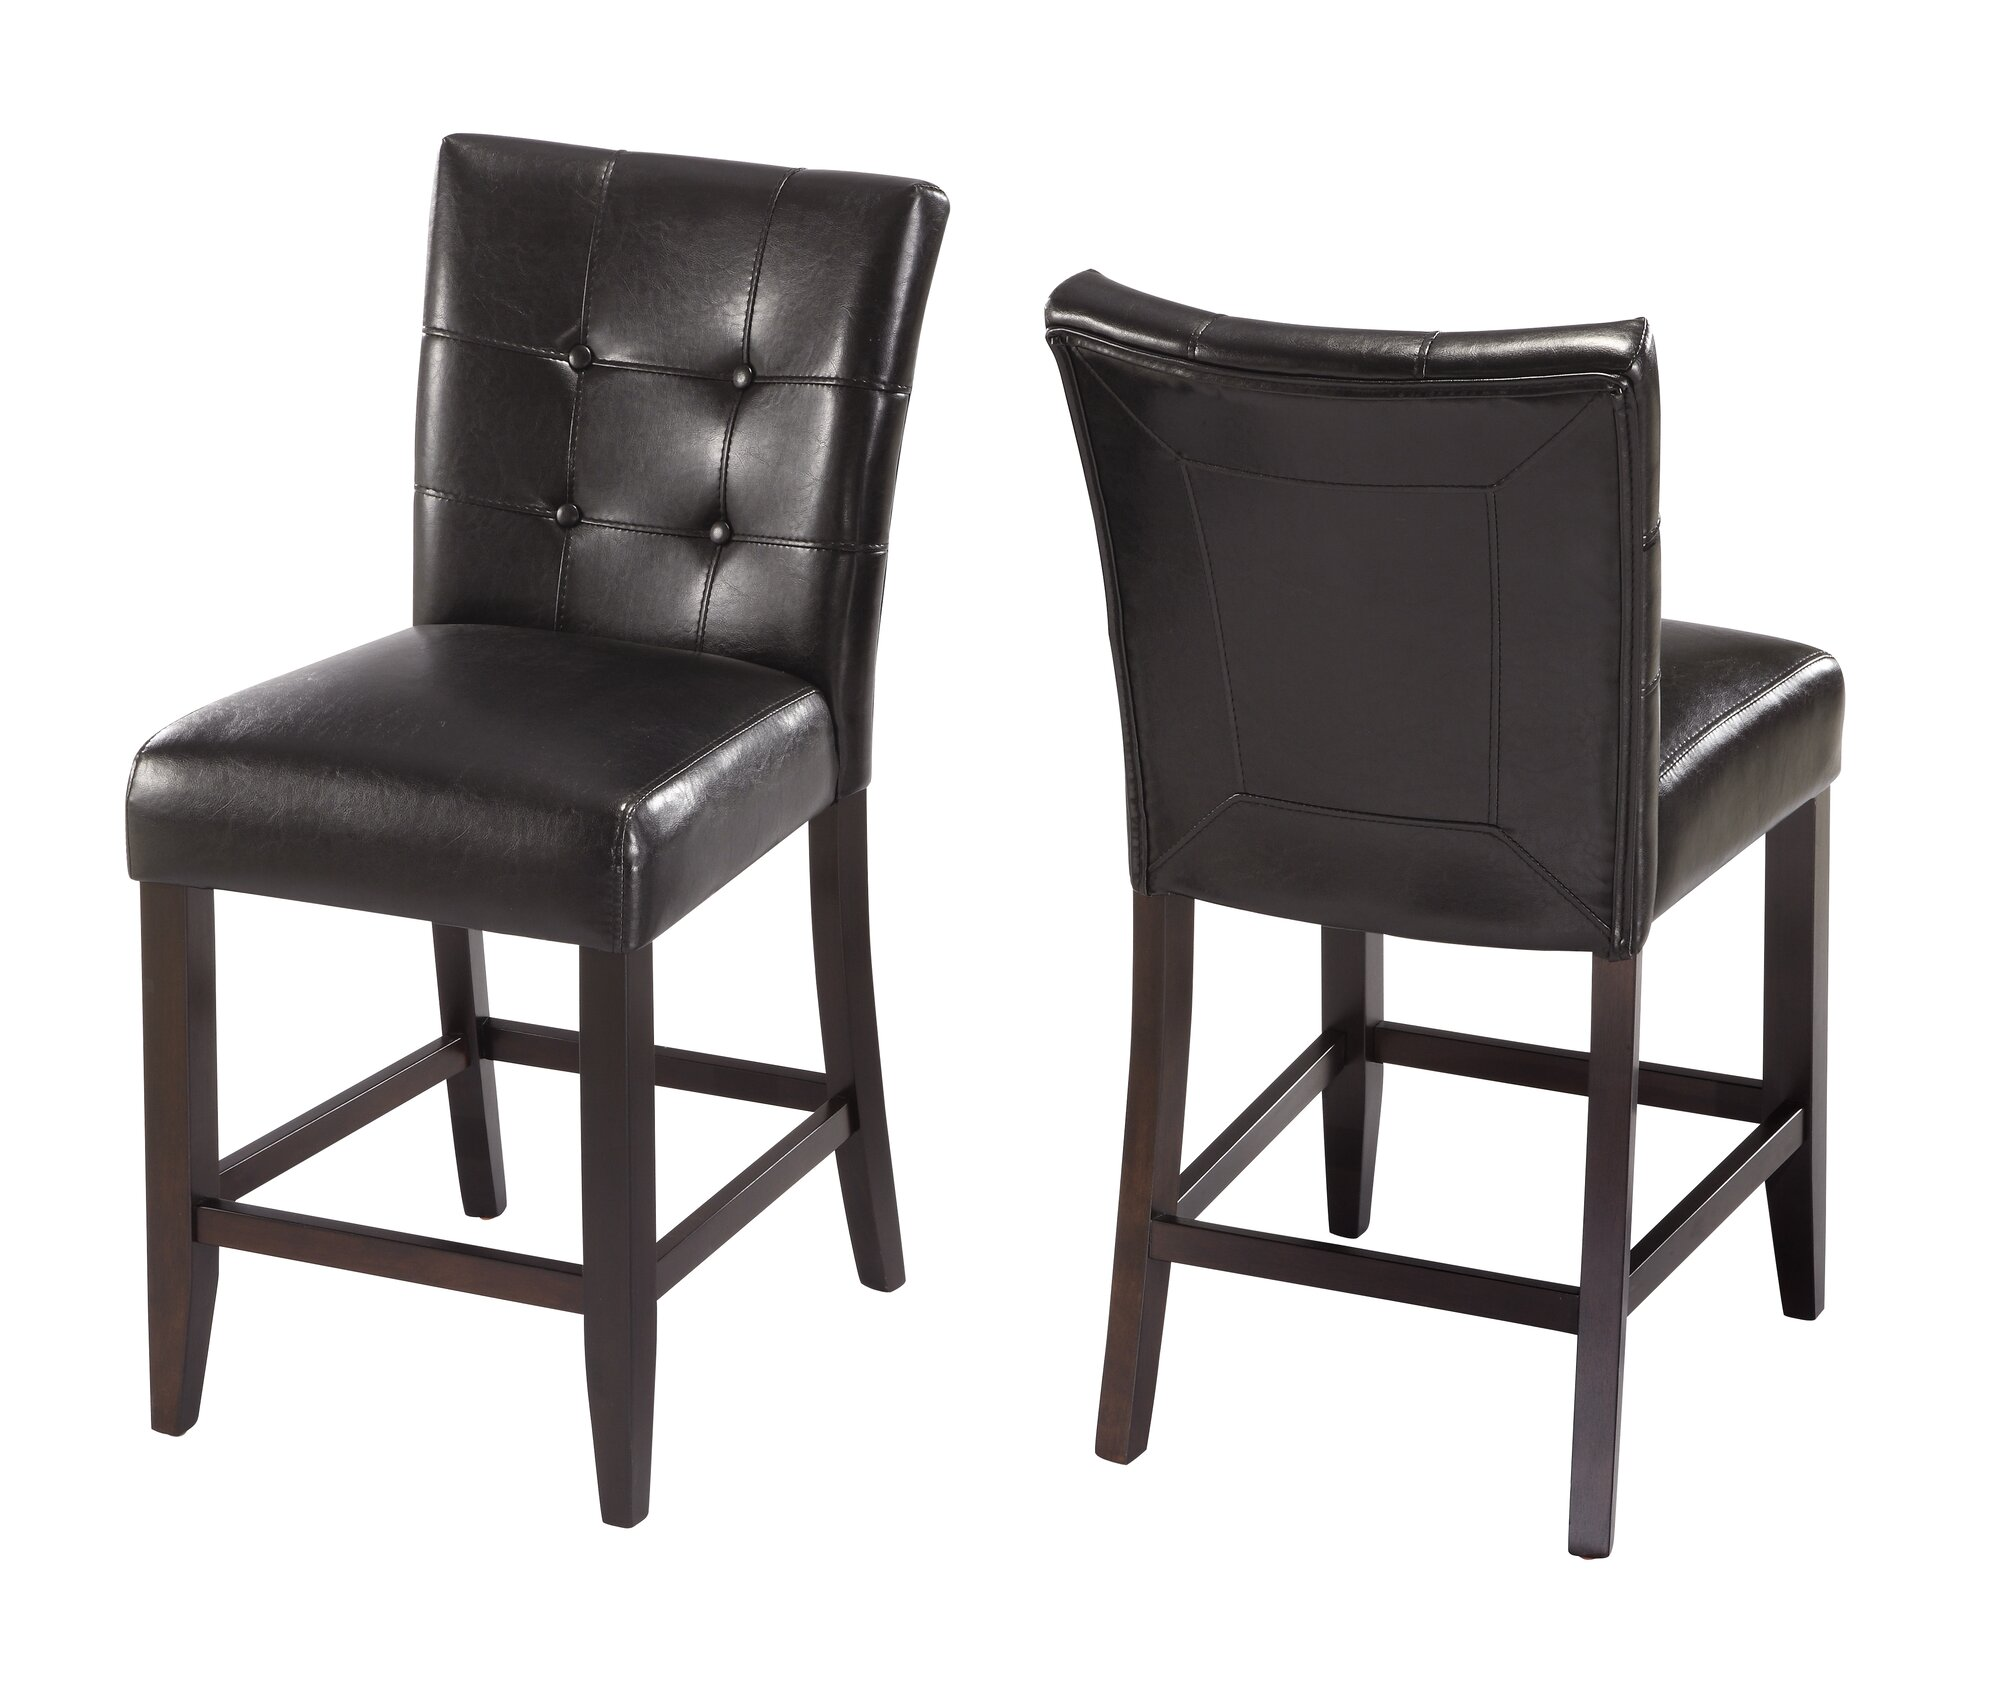 Counter Height 24 Stools Black Set of 2 Dining Chairs